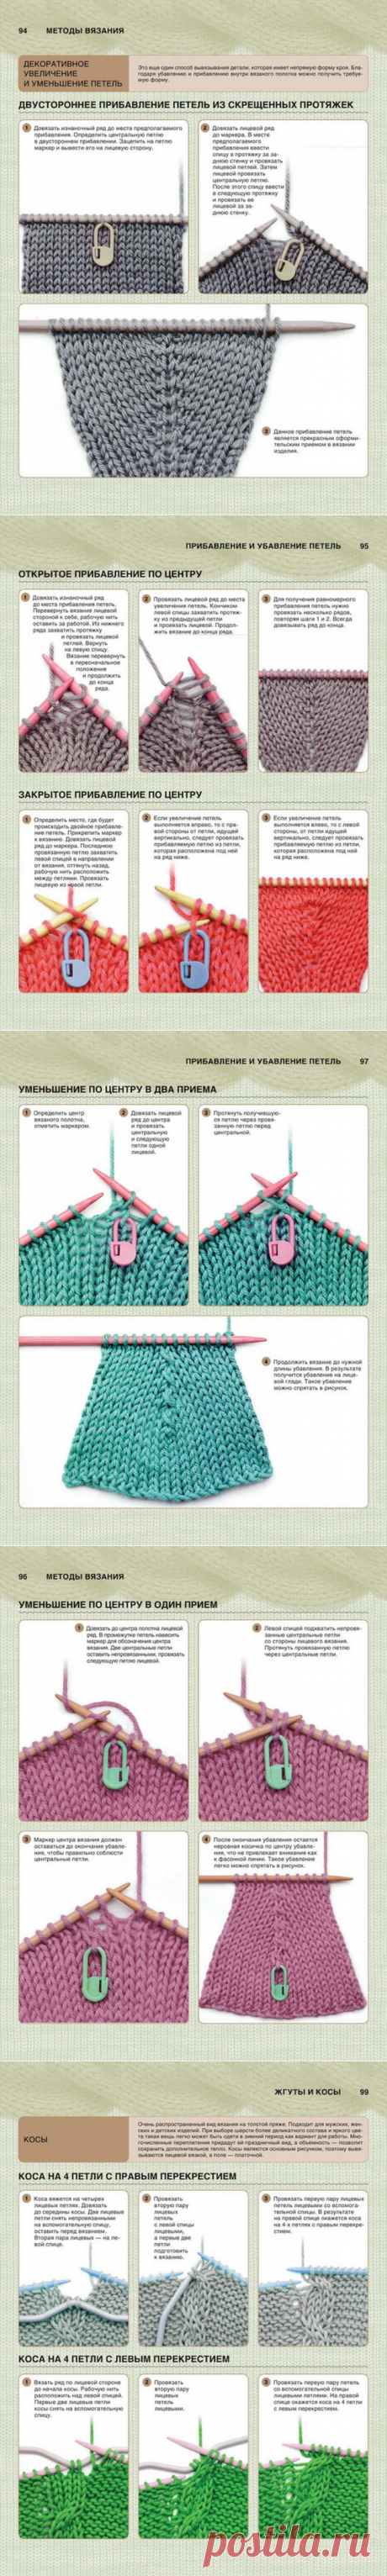 The most useful, full and modern self-instruction manual on knitting Part 12